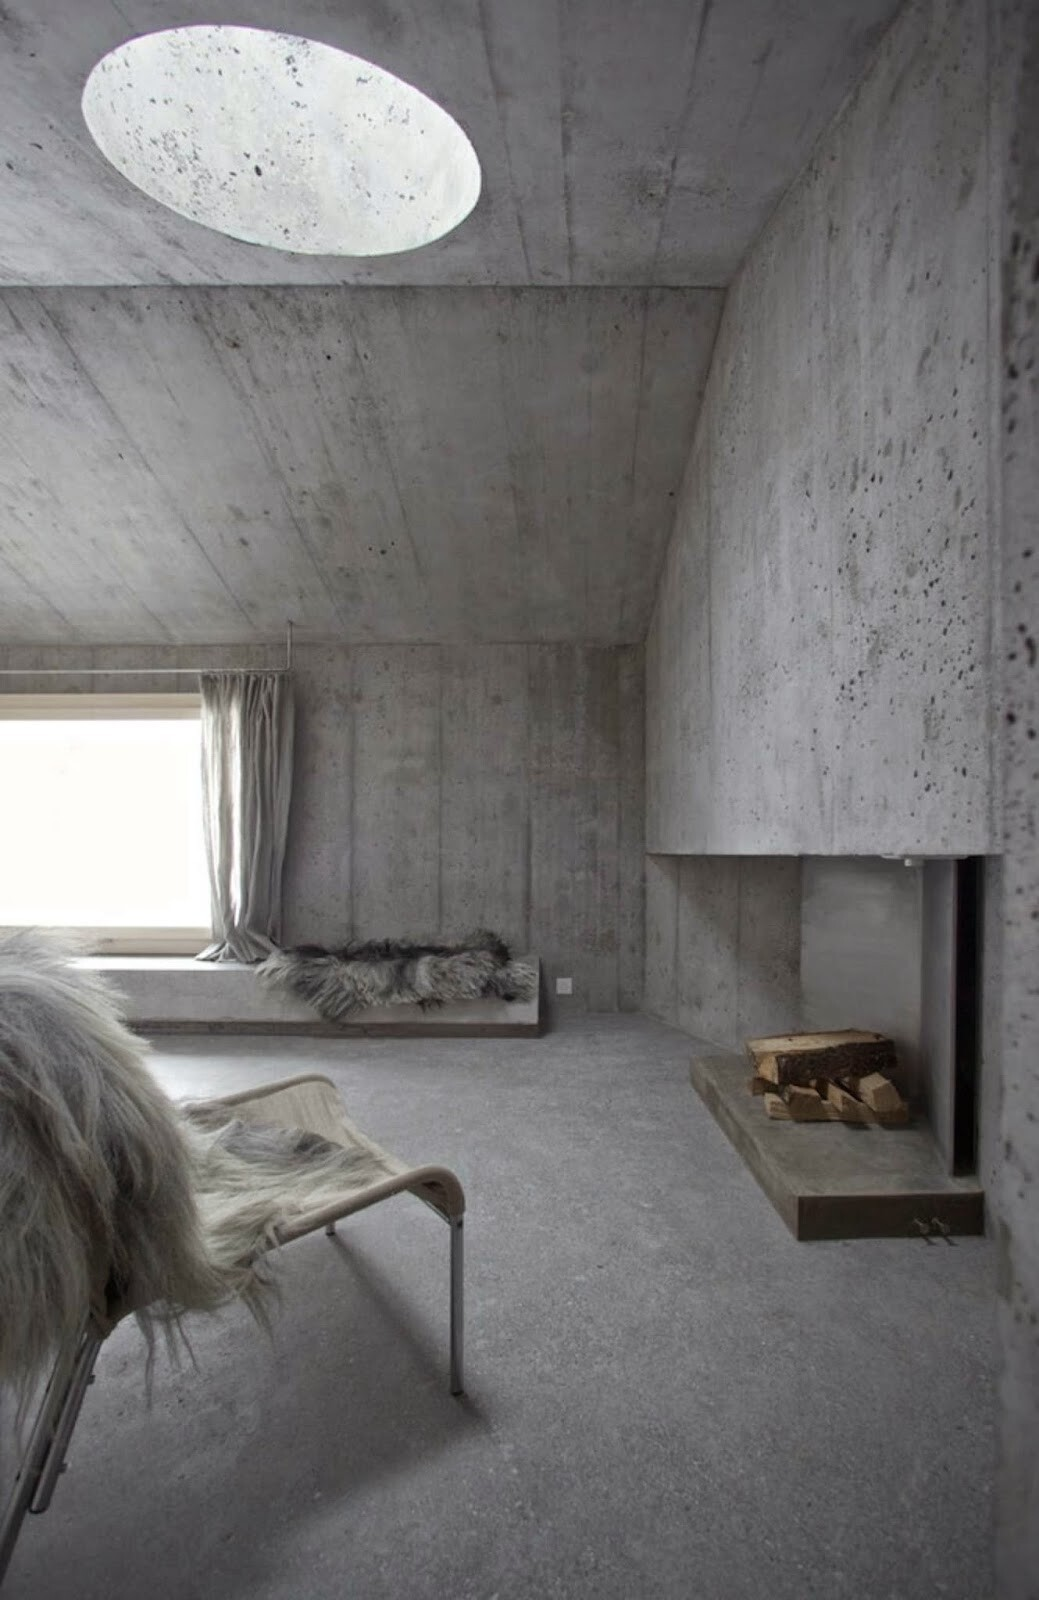 Fascinating concrete cabin in the Swiss Alps by German architecture studio Nickisch Sano Walder Architekten (4)